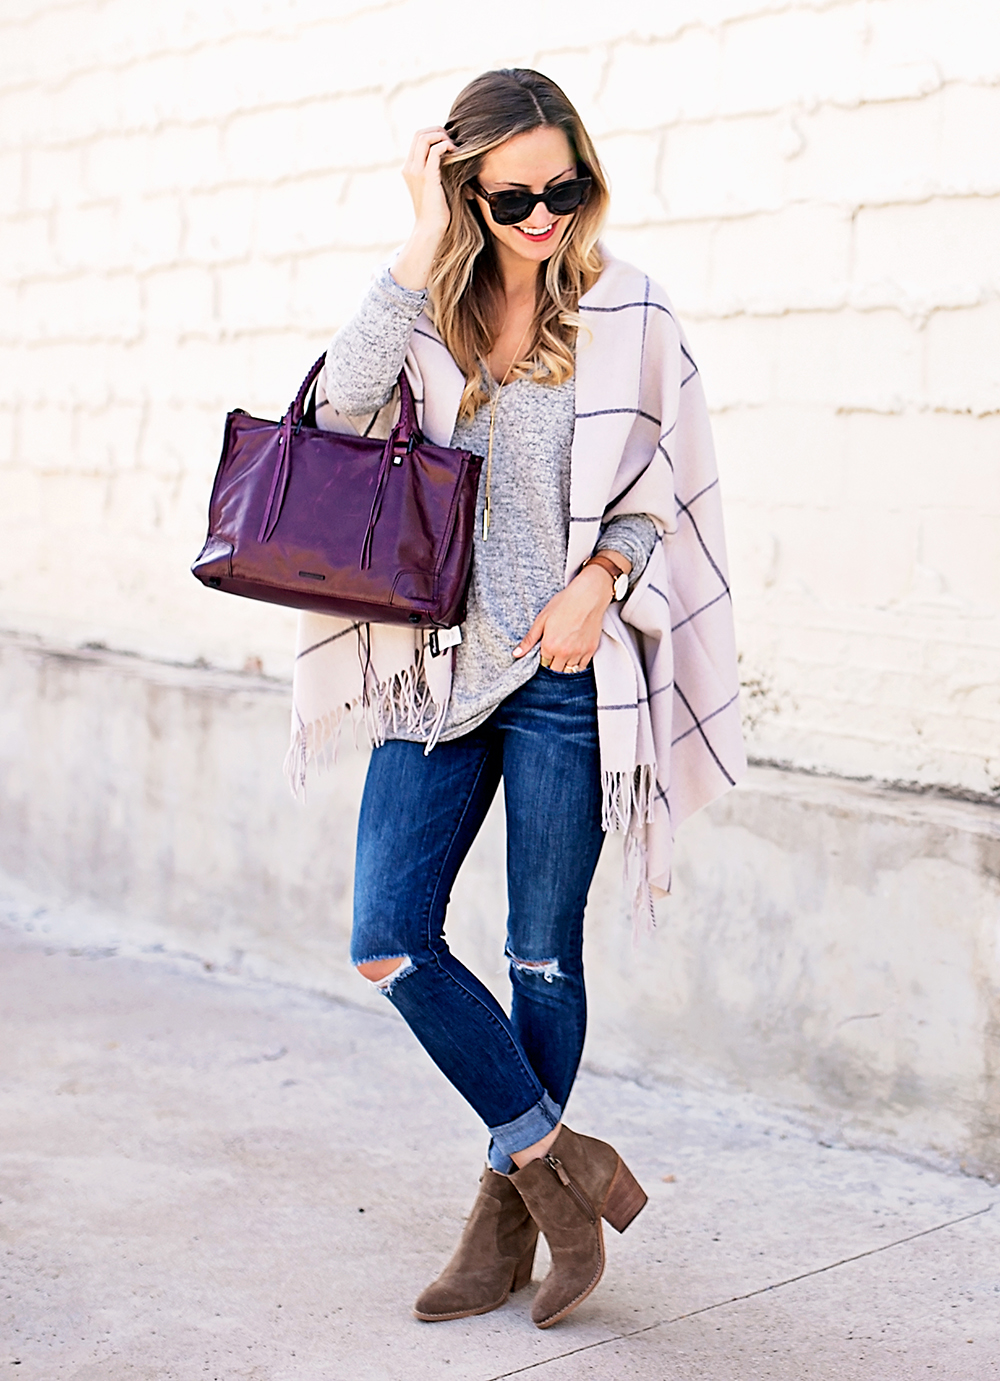 livvyland-blog-olivia-watson-nordstrom-fall-outfit-grey-sweater-booties-madewell-plaid-poncho-rebecca-minkoff-regan-satchel-burgundy-oxblood-9